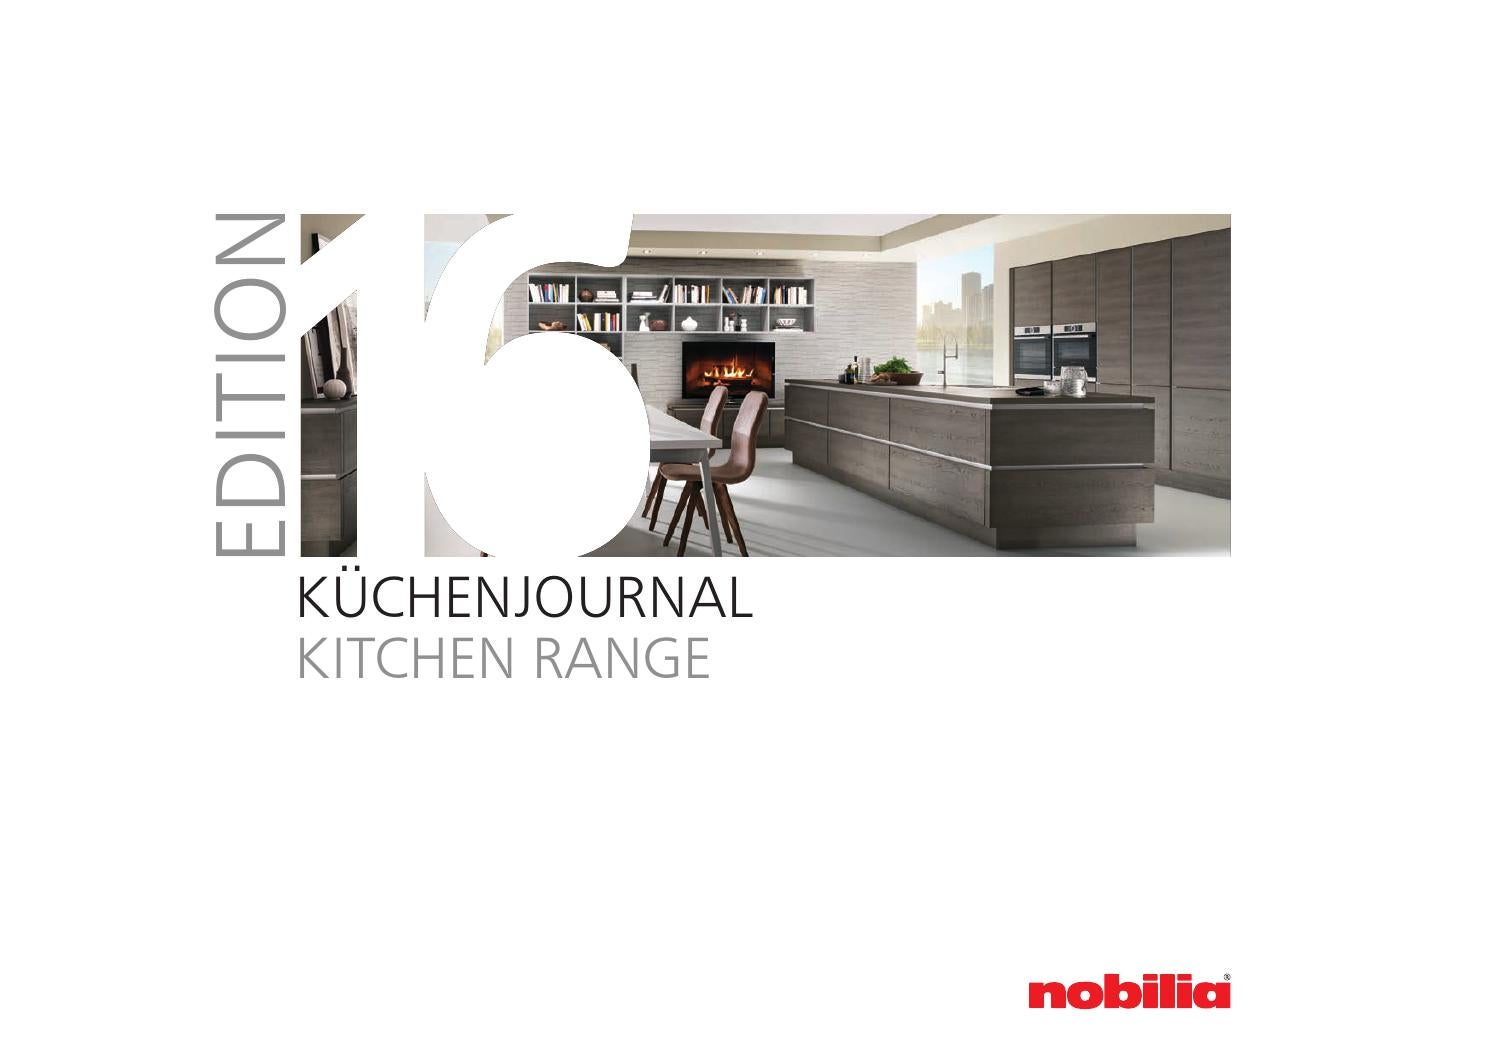 Küchenjournal Kitchen Range ~ nobiliajournal 2016 by inova kitchens issuu